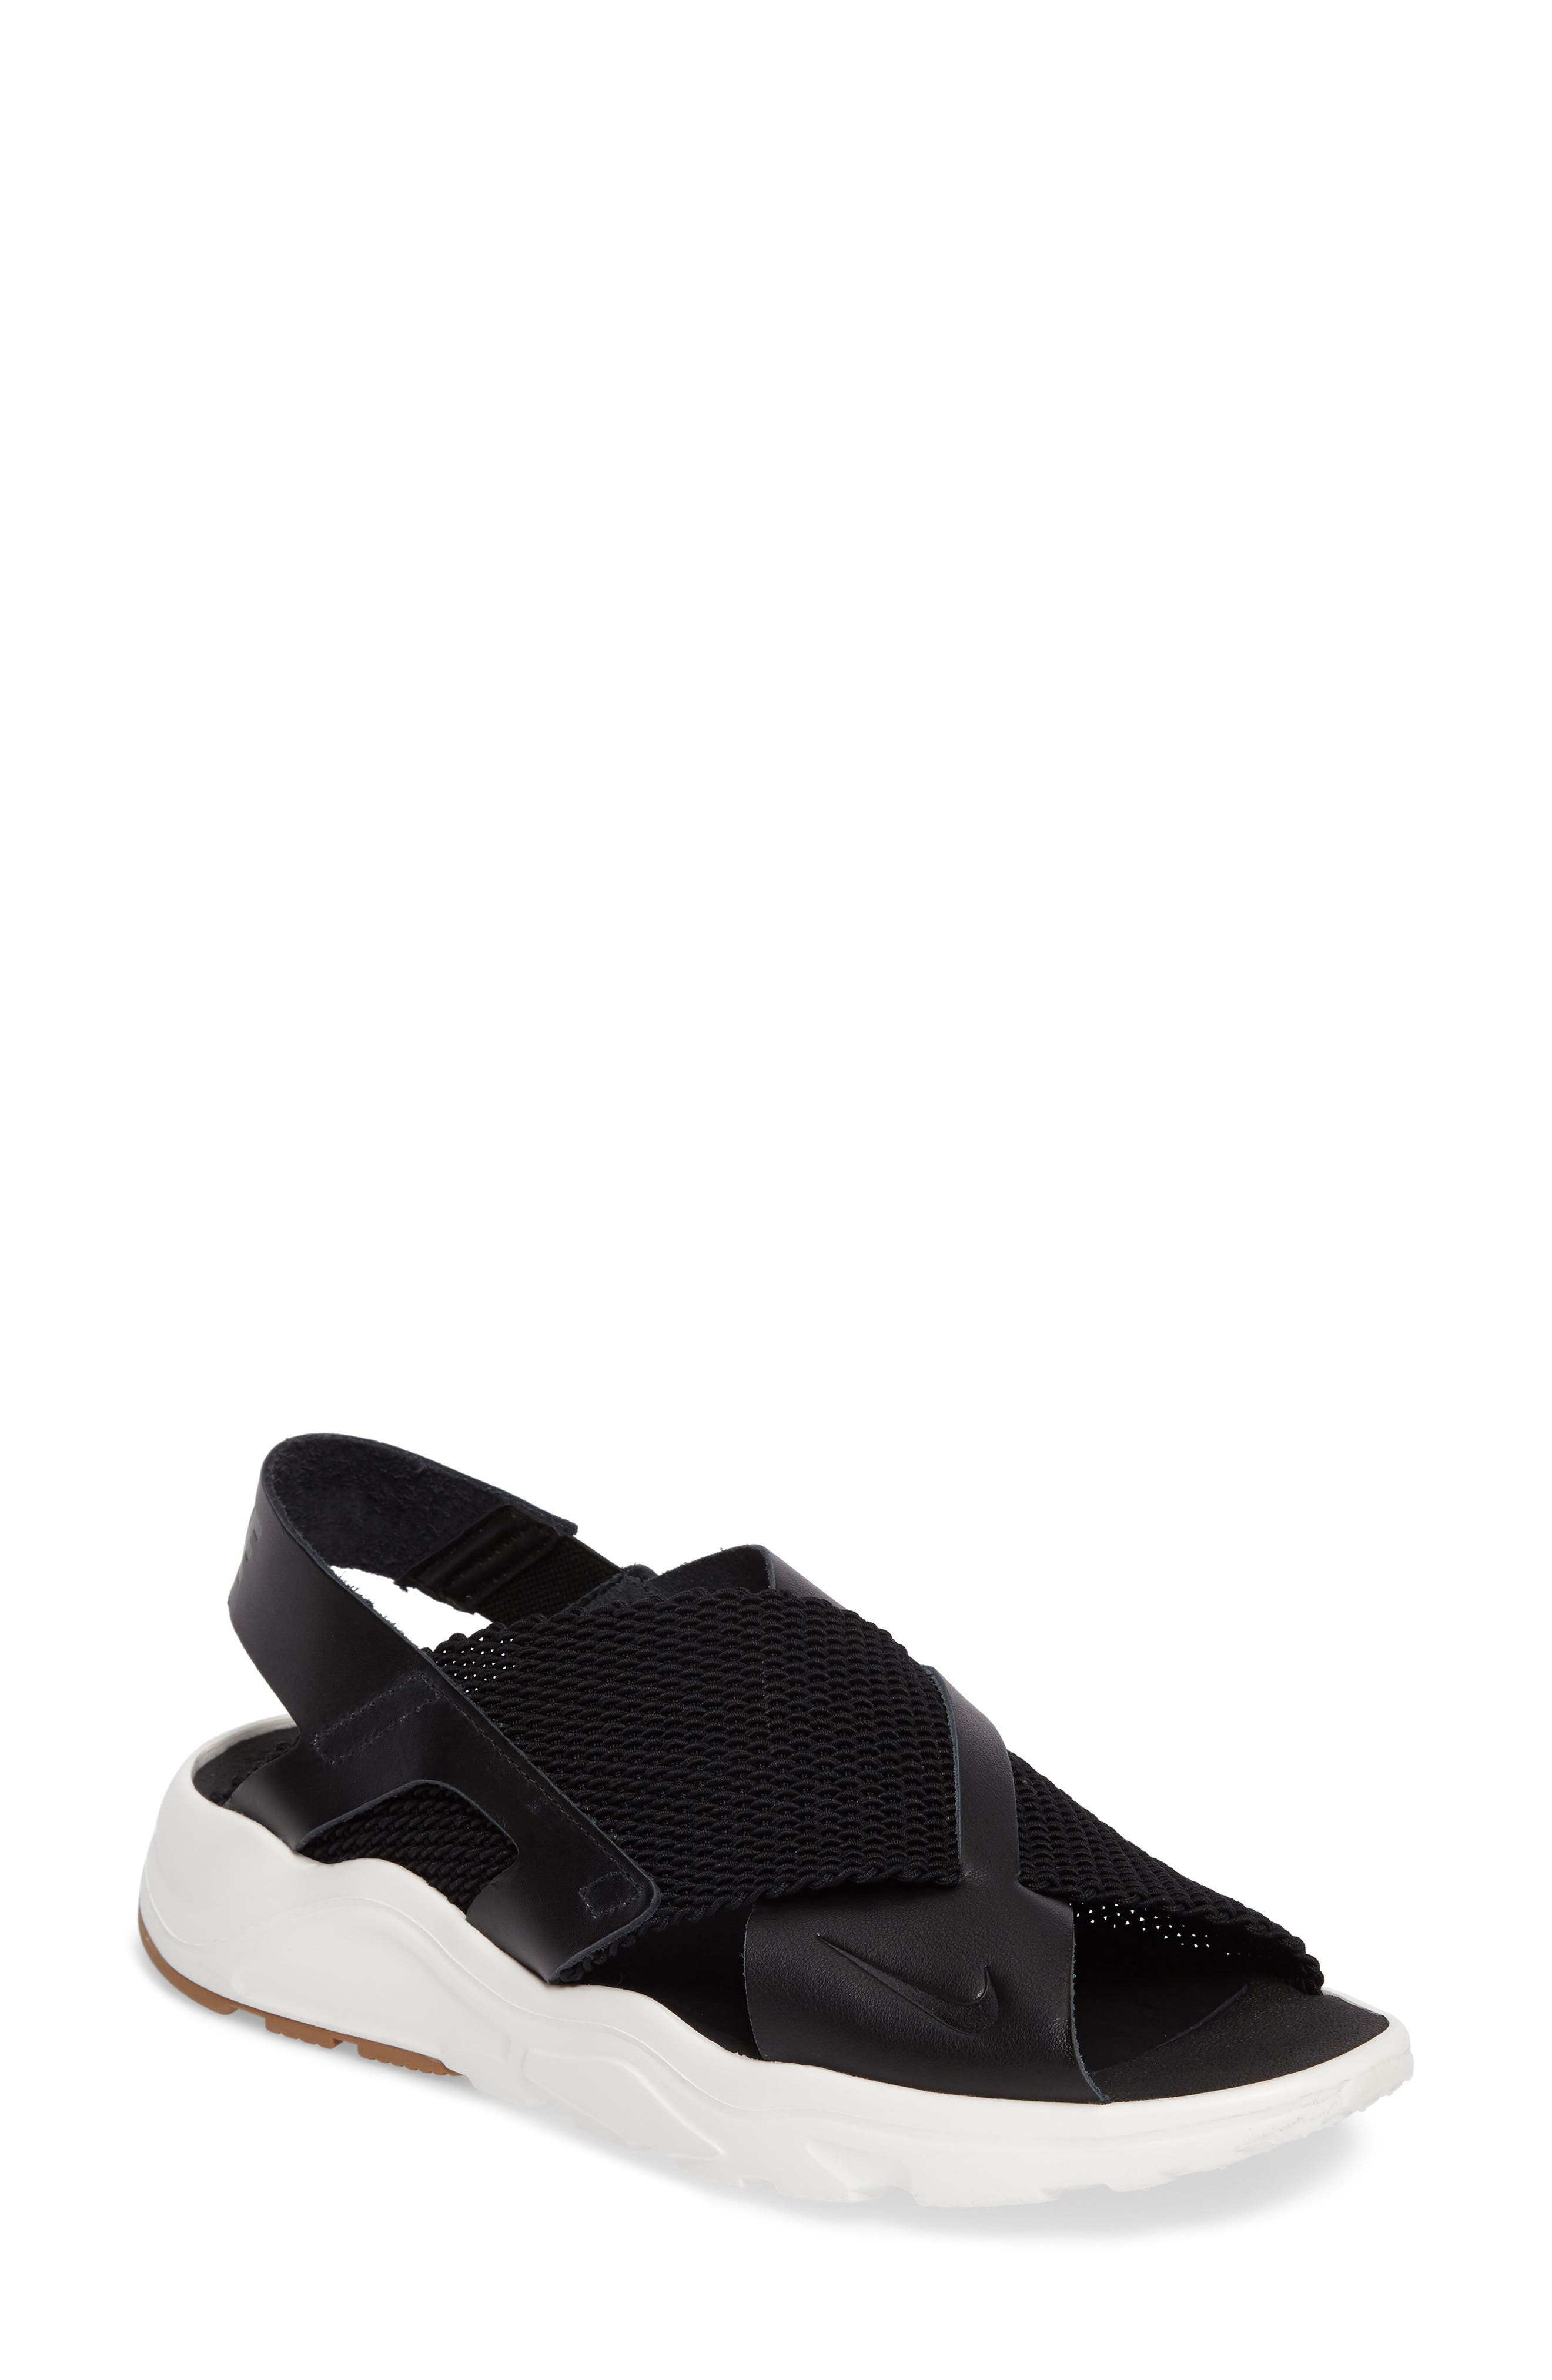 Air Huarache Ultra Sport Sandal,                         Main,                         color,